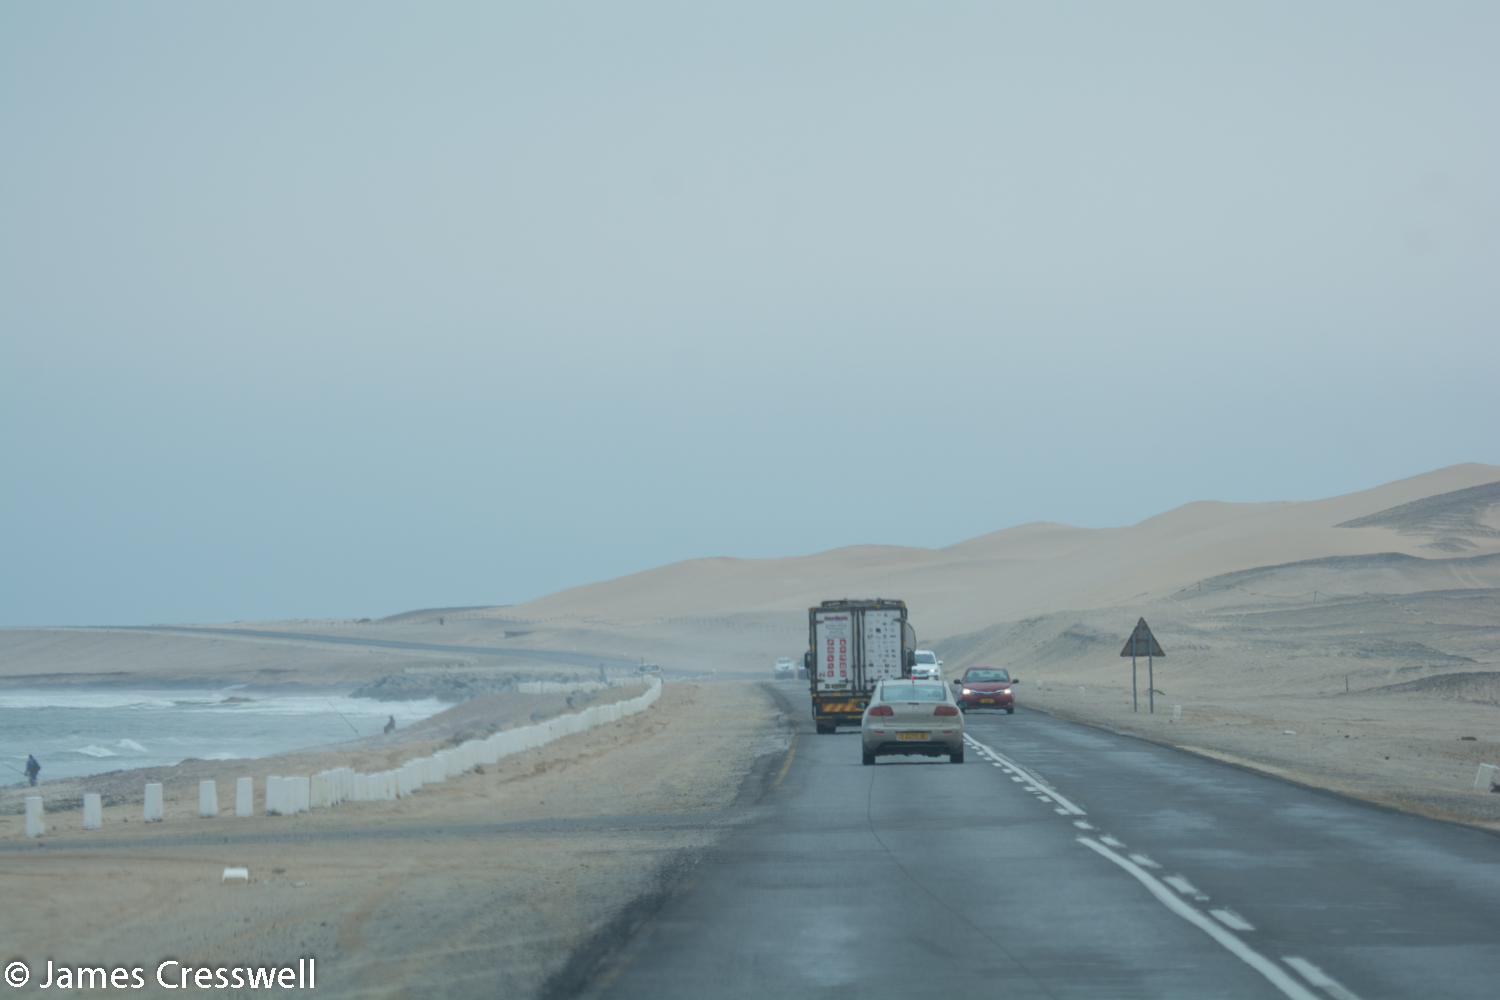 The coast road between Walvis Bay and Swakopmund. Here the desert dunes reach the sea. The area is usually foggy due to the cold temperature of the sea.